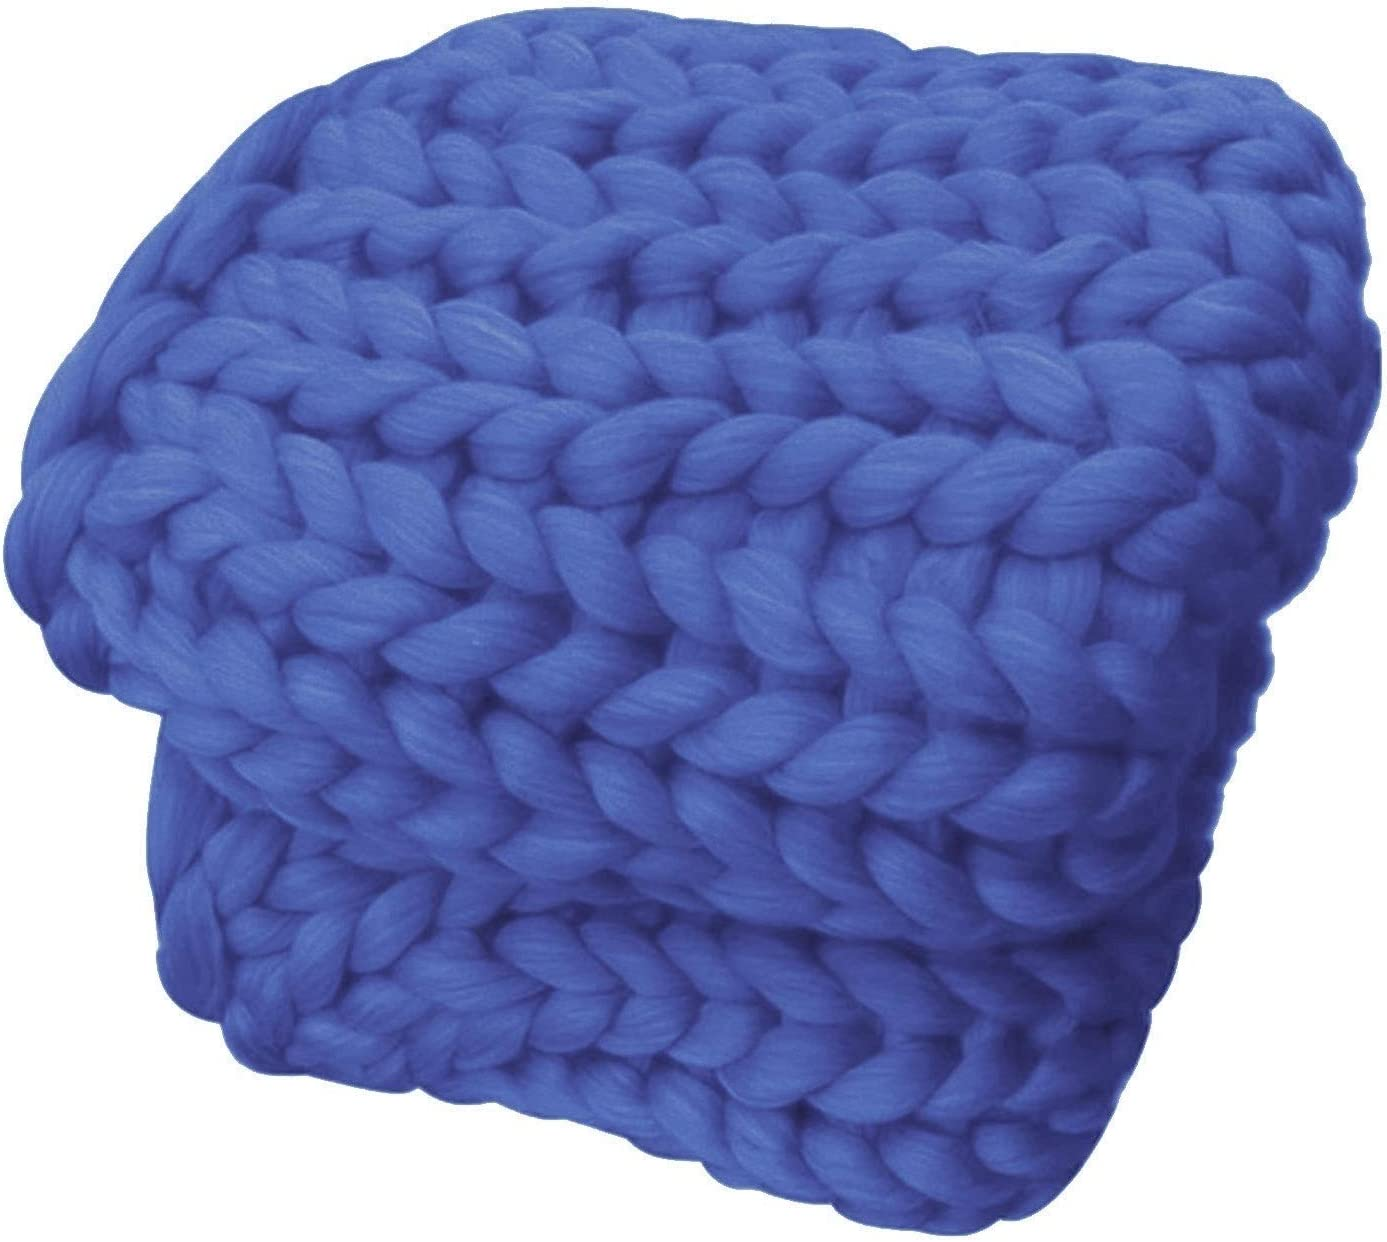 MZP Chunky Knit Blanket for Throw Bla Super Bed High order trust Soft